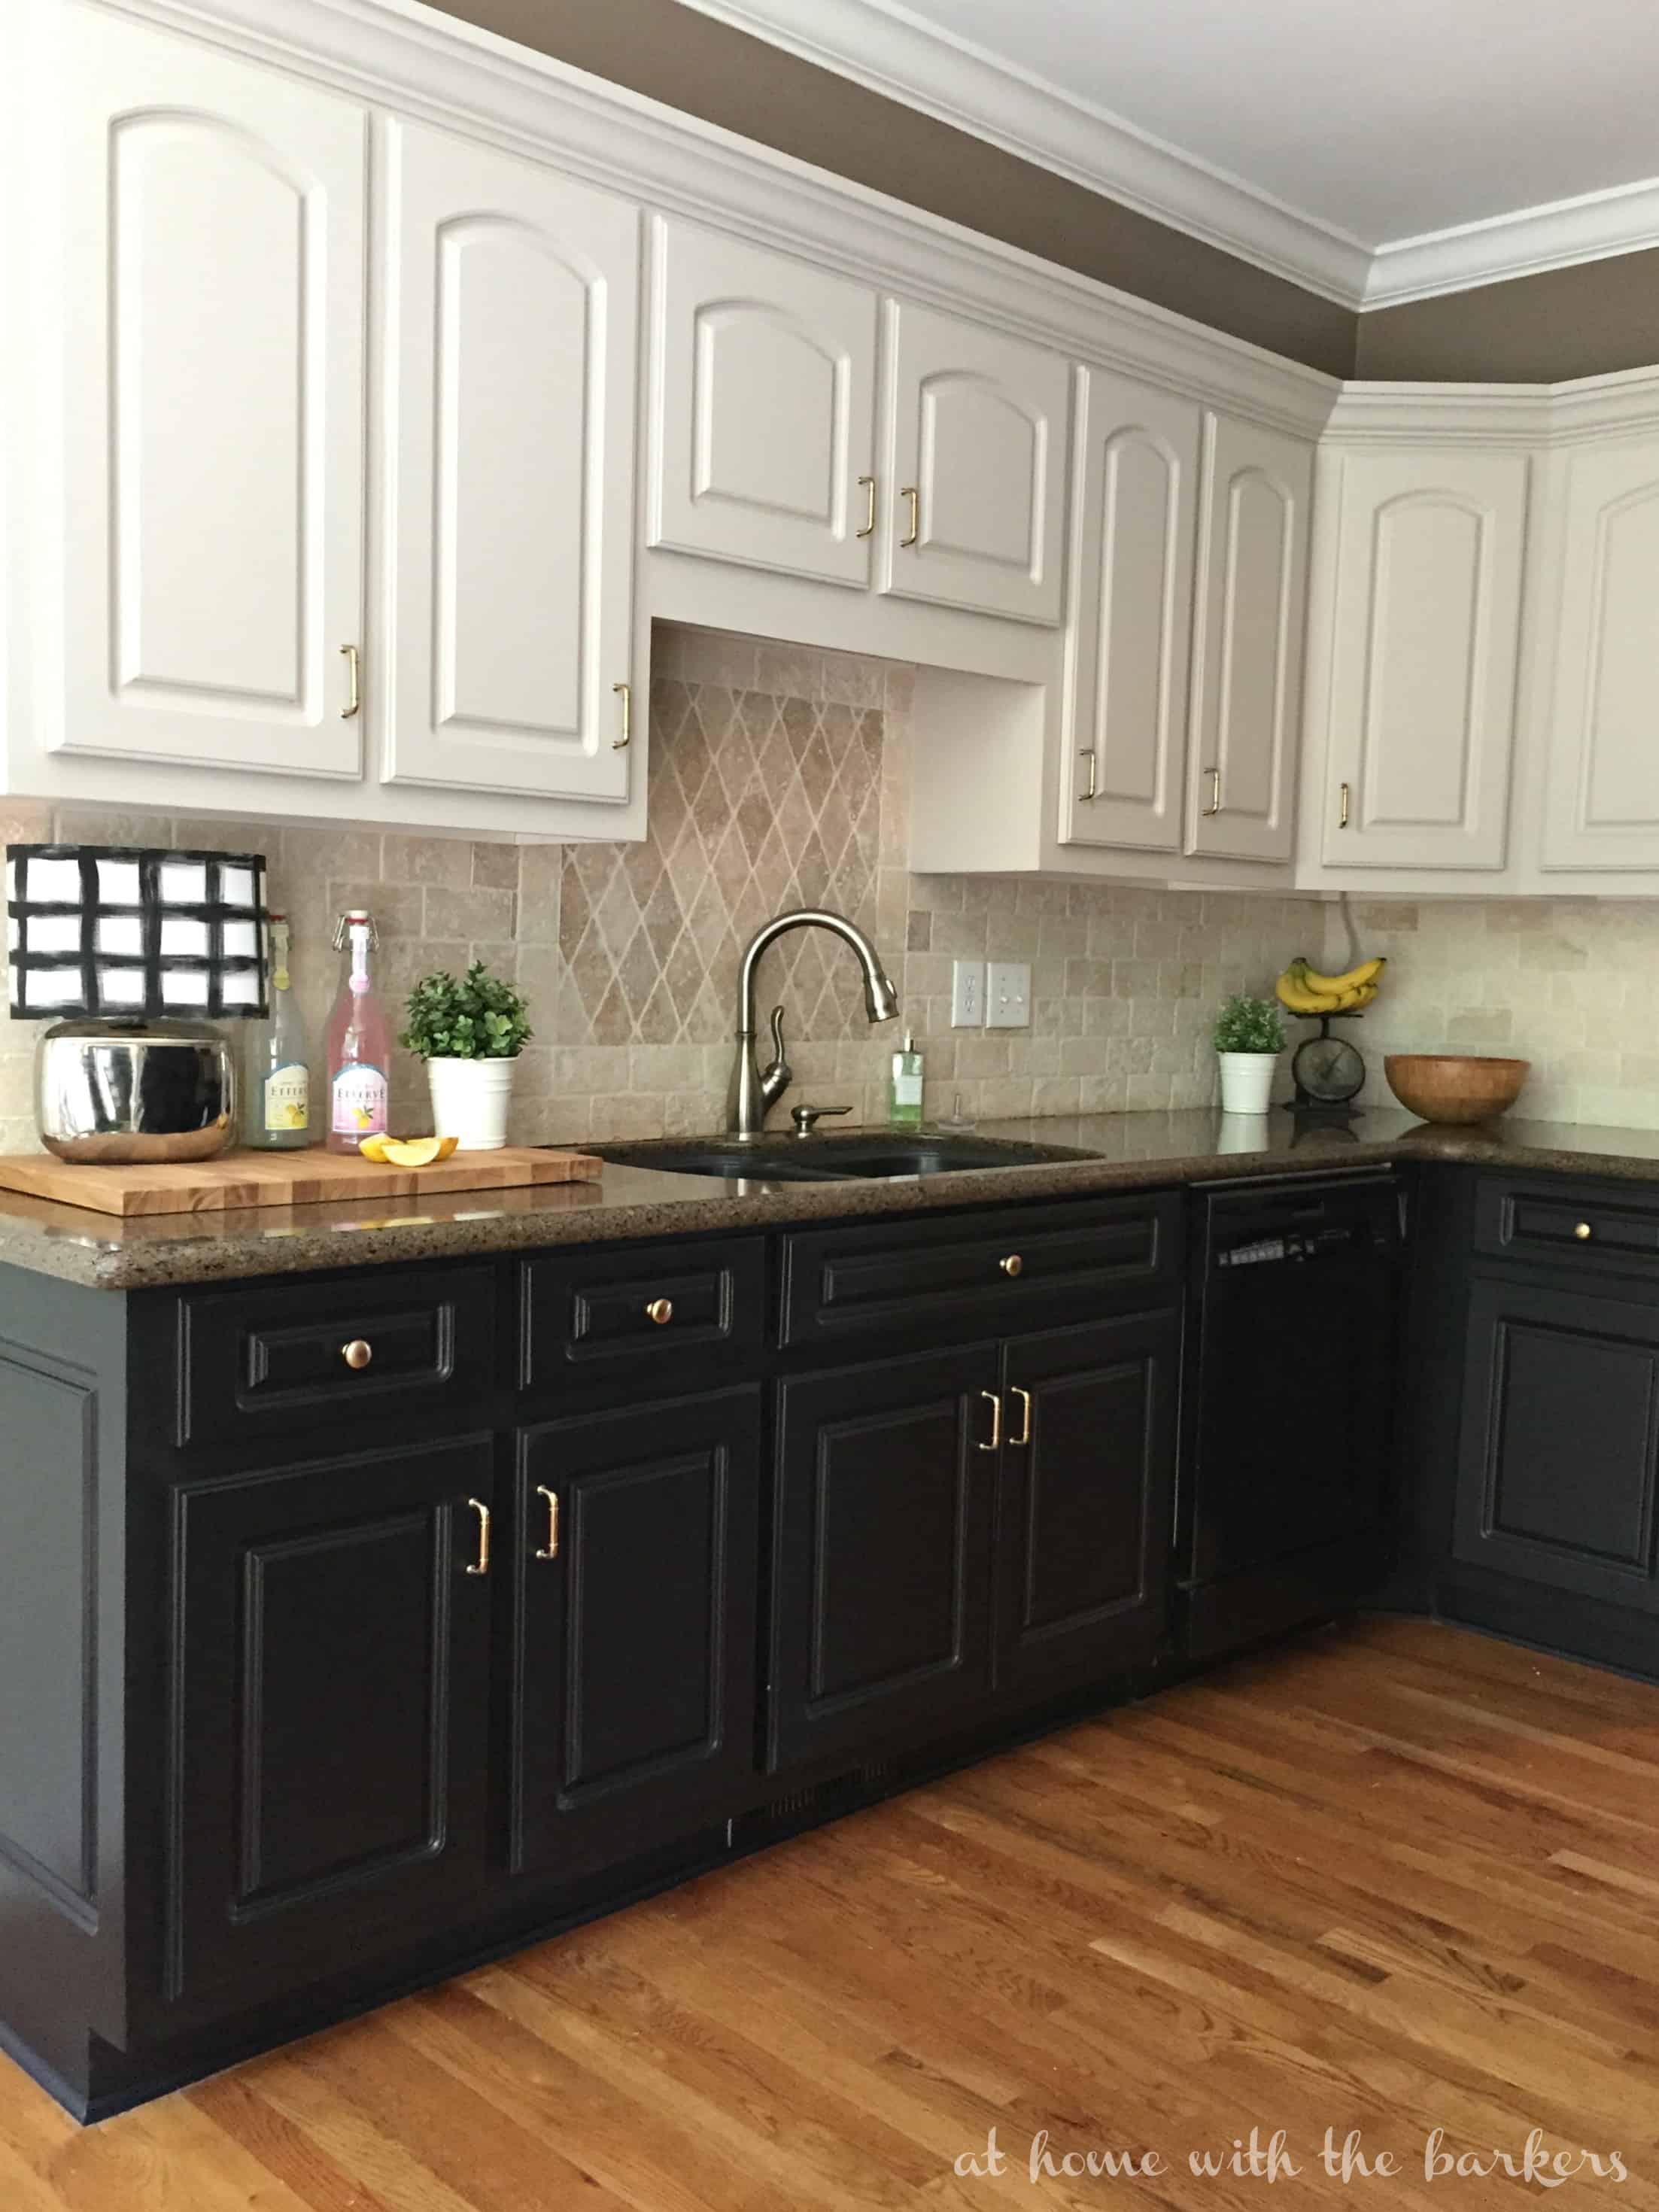 White Upper And Black Lower Kitchen Cabinets